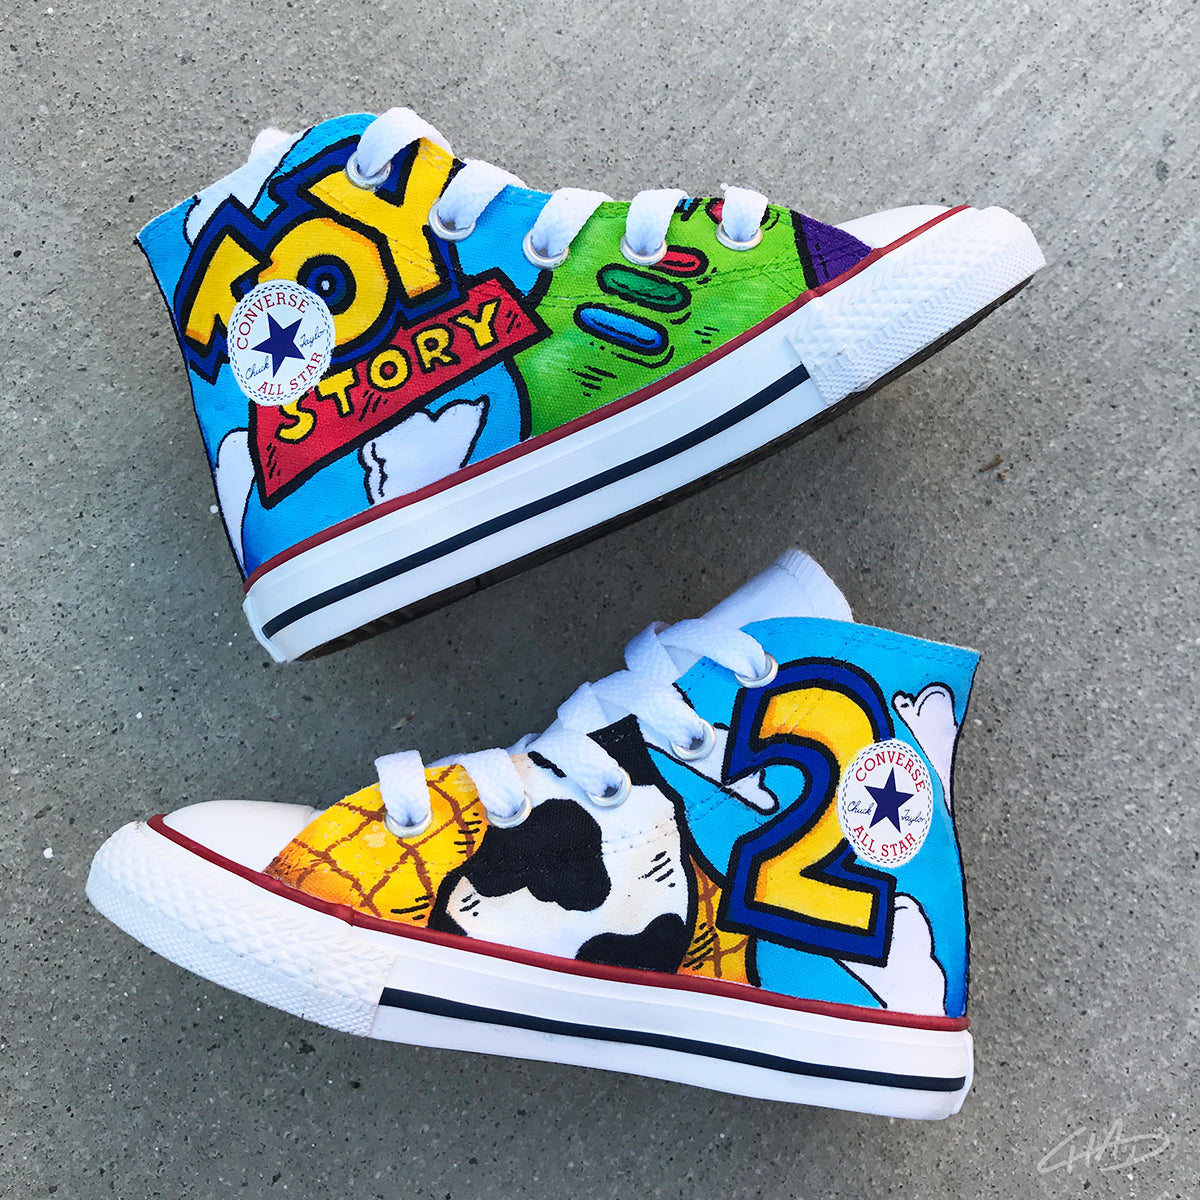 471a9a7e3e91 ... low price custom hand painted toddler toy story converse chucks 29bb3  6fa64